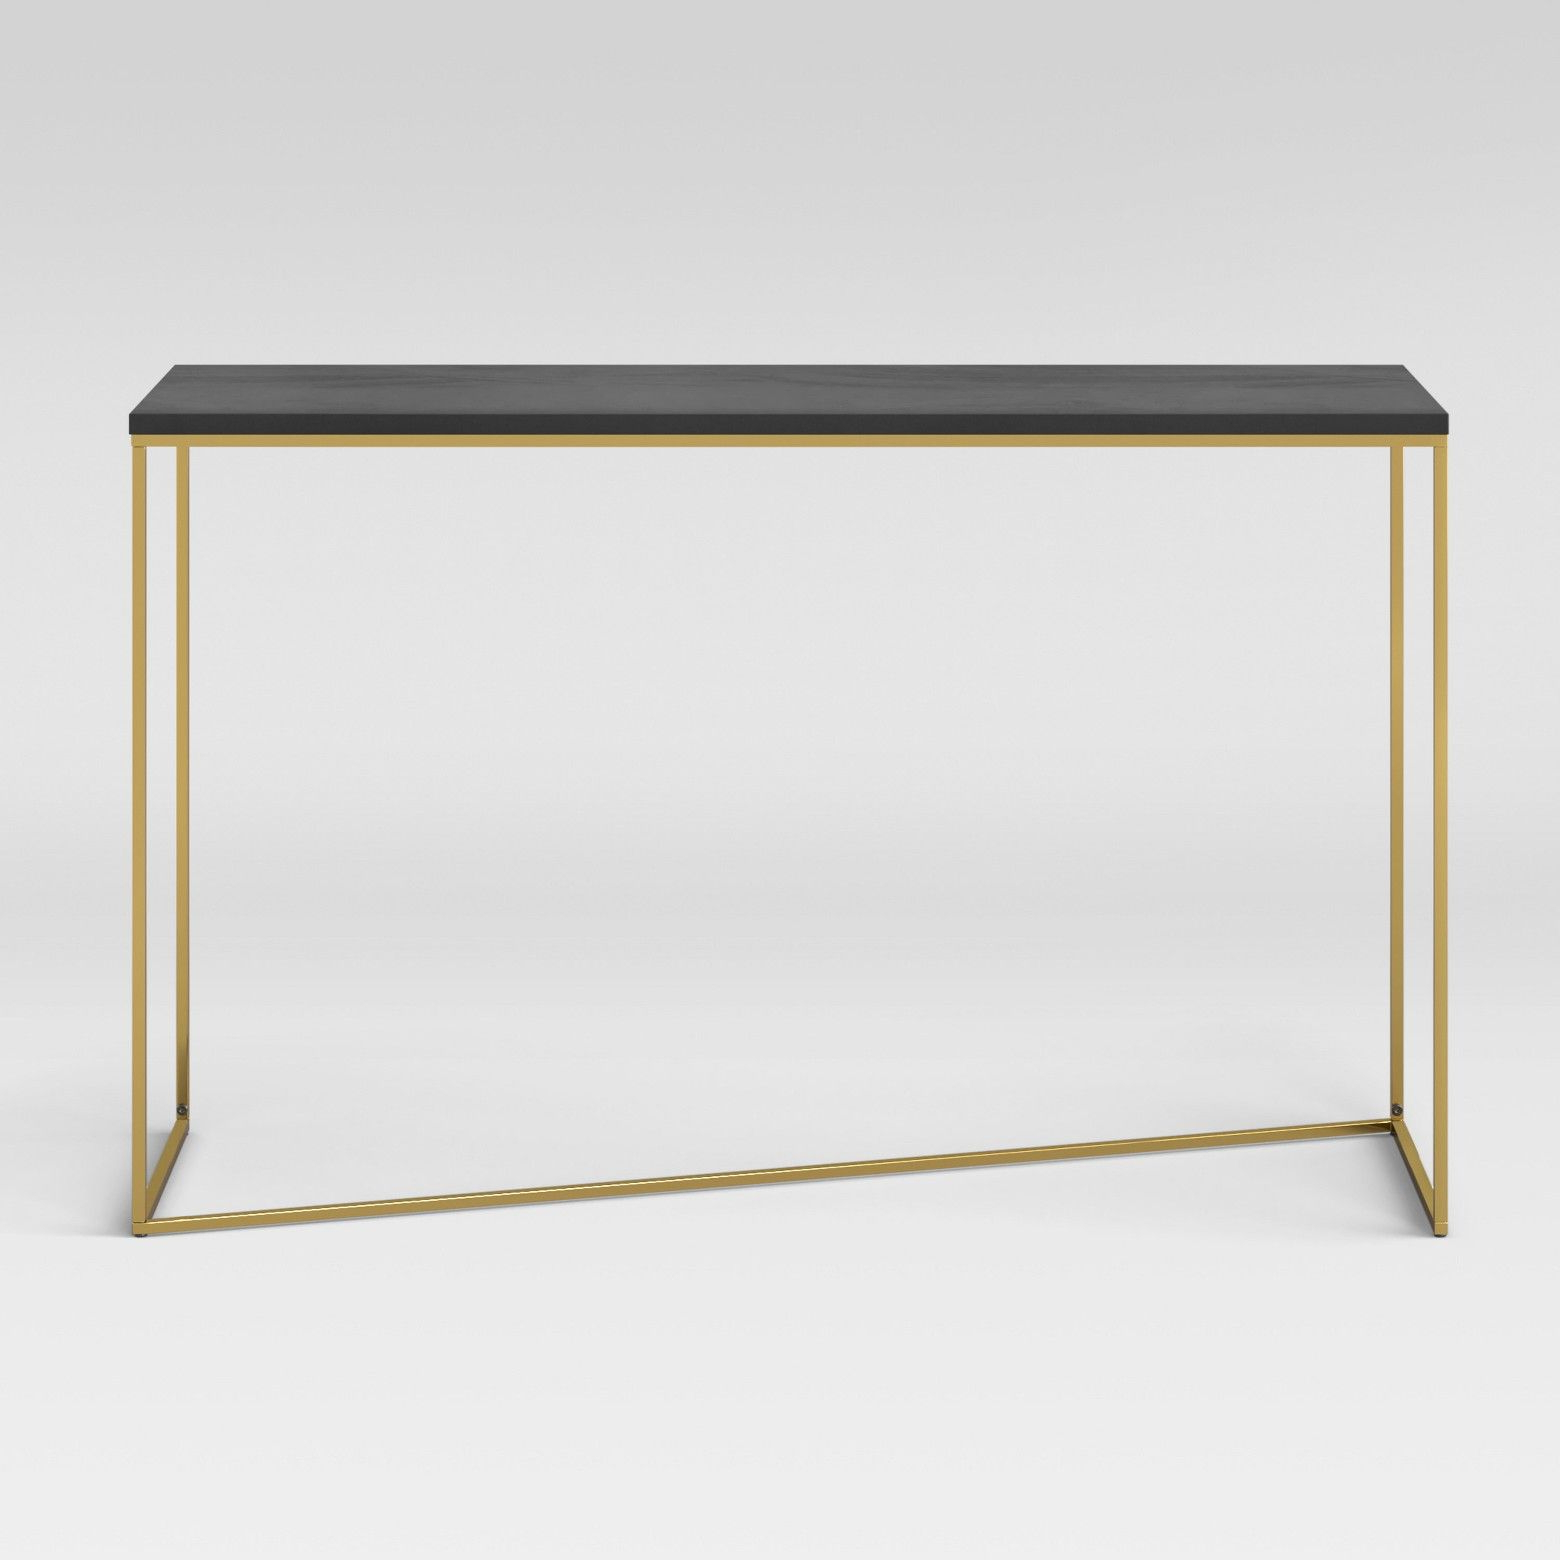 Favorite Elke Marble Console Tables With Brass Base Intended For The Sollerod Console Table Brass And Black From Project (View 9 of 20)